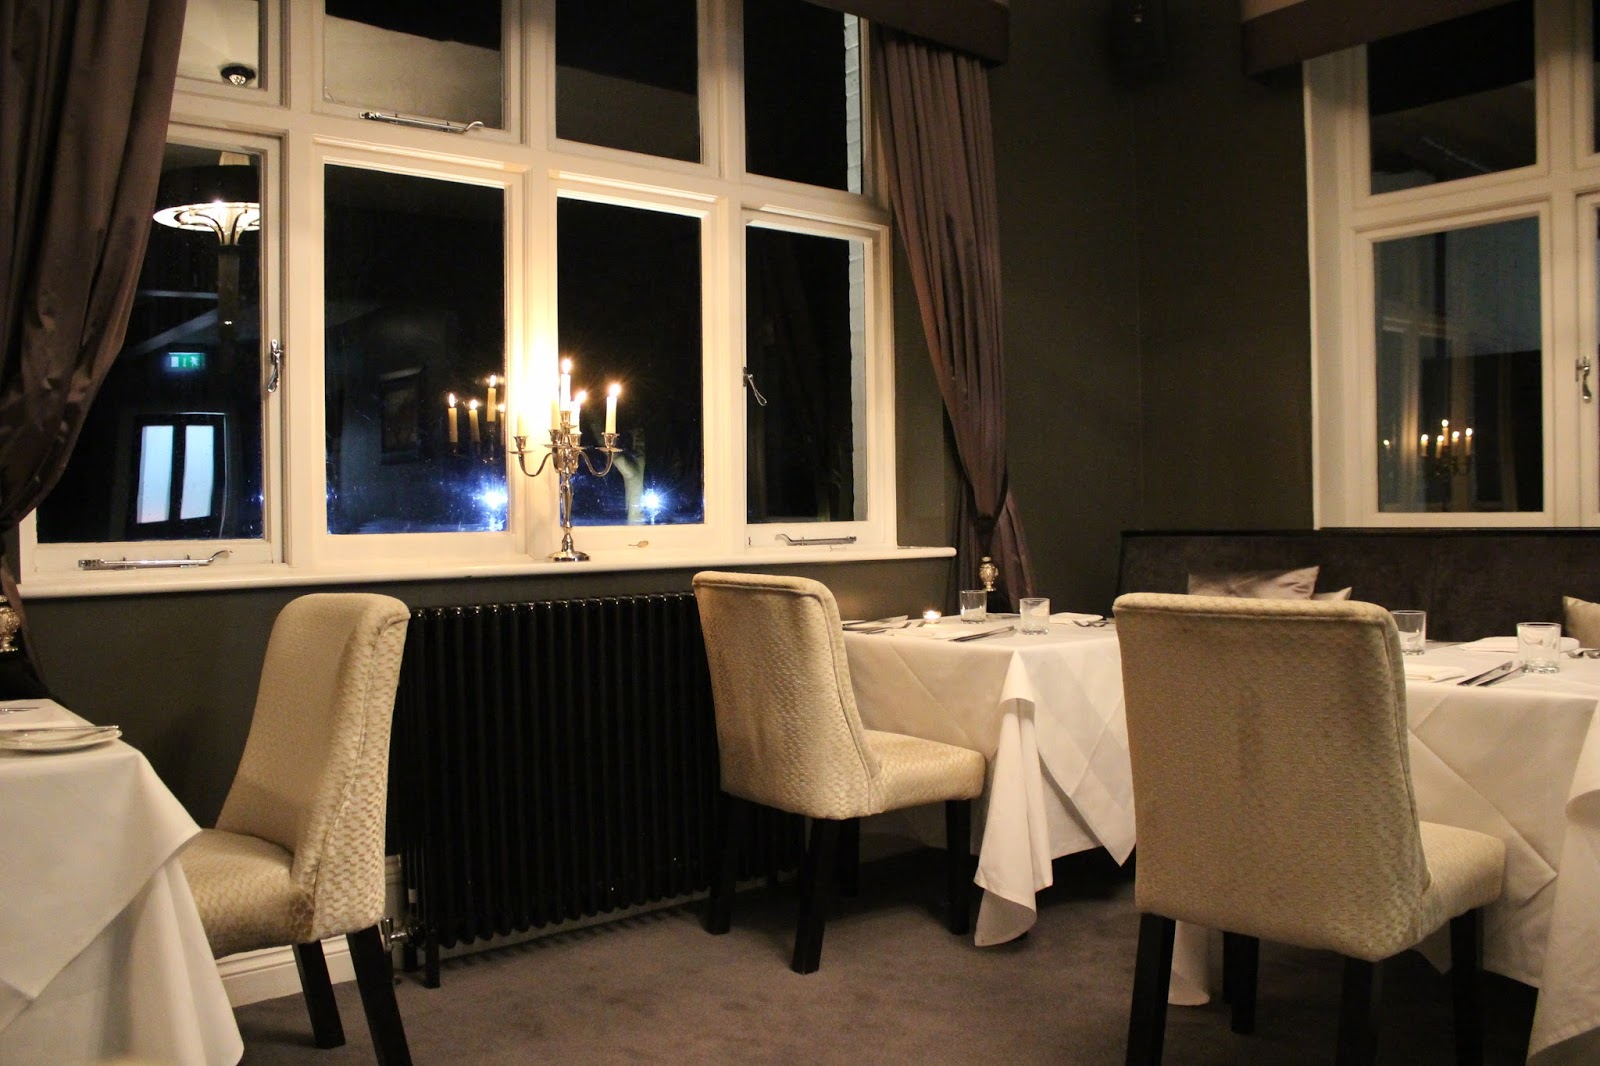 Paddocks House Hotel, Newmarket, Cambridgeshire - Restaurant